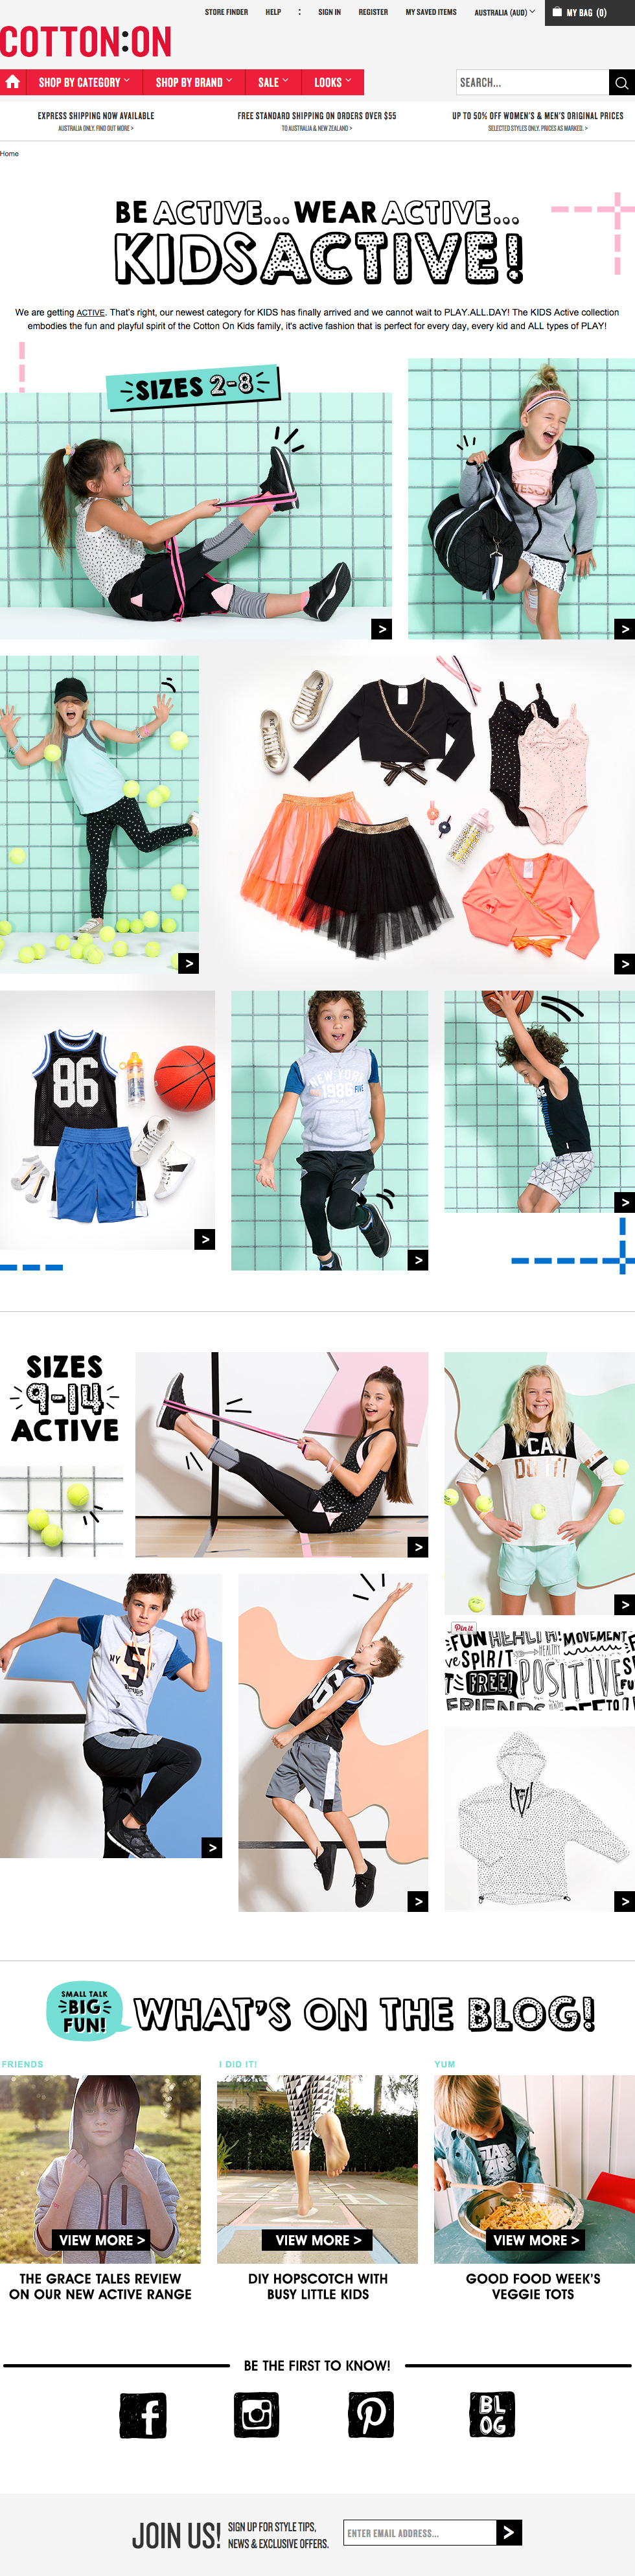 KIDS-ARTICLEPAGE-17AUG-ACTIVE-LOOKBOOK-ANZ-V2-2